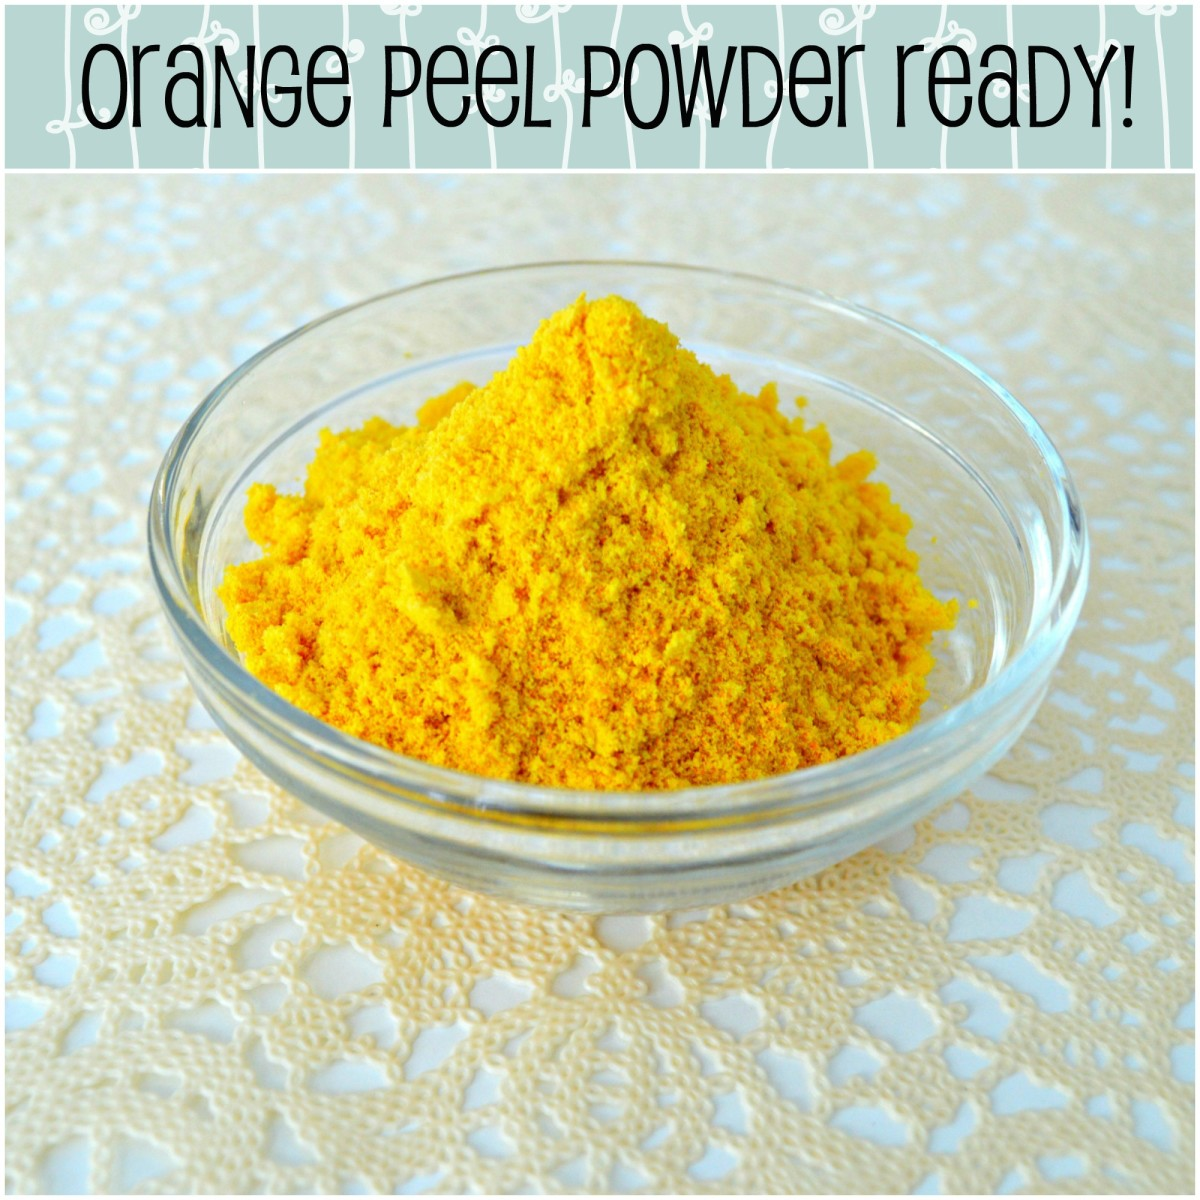 What a gorgeous colour! Store your orange peel in an airtight container. Use within 3 months.